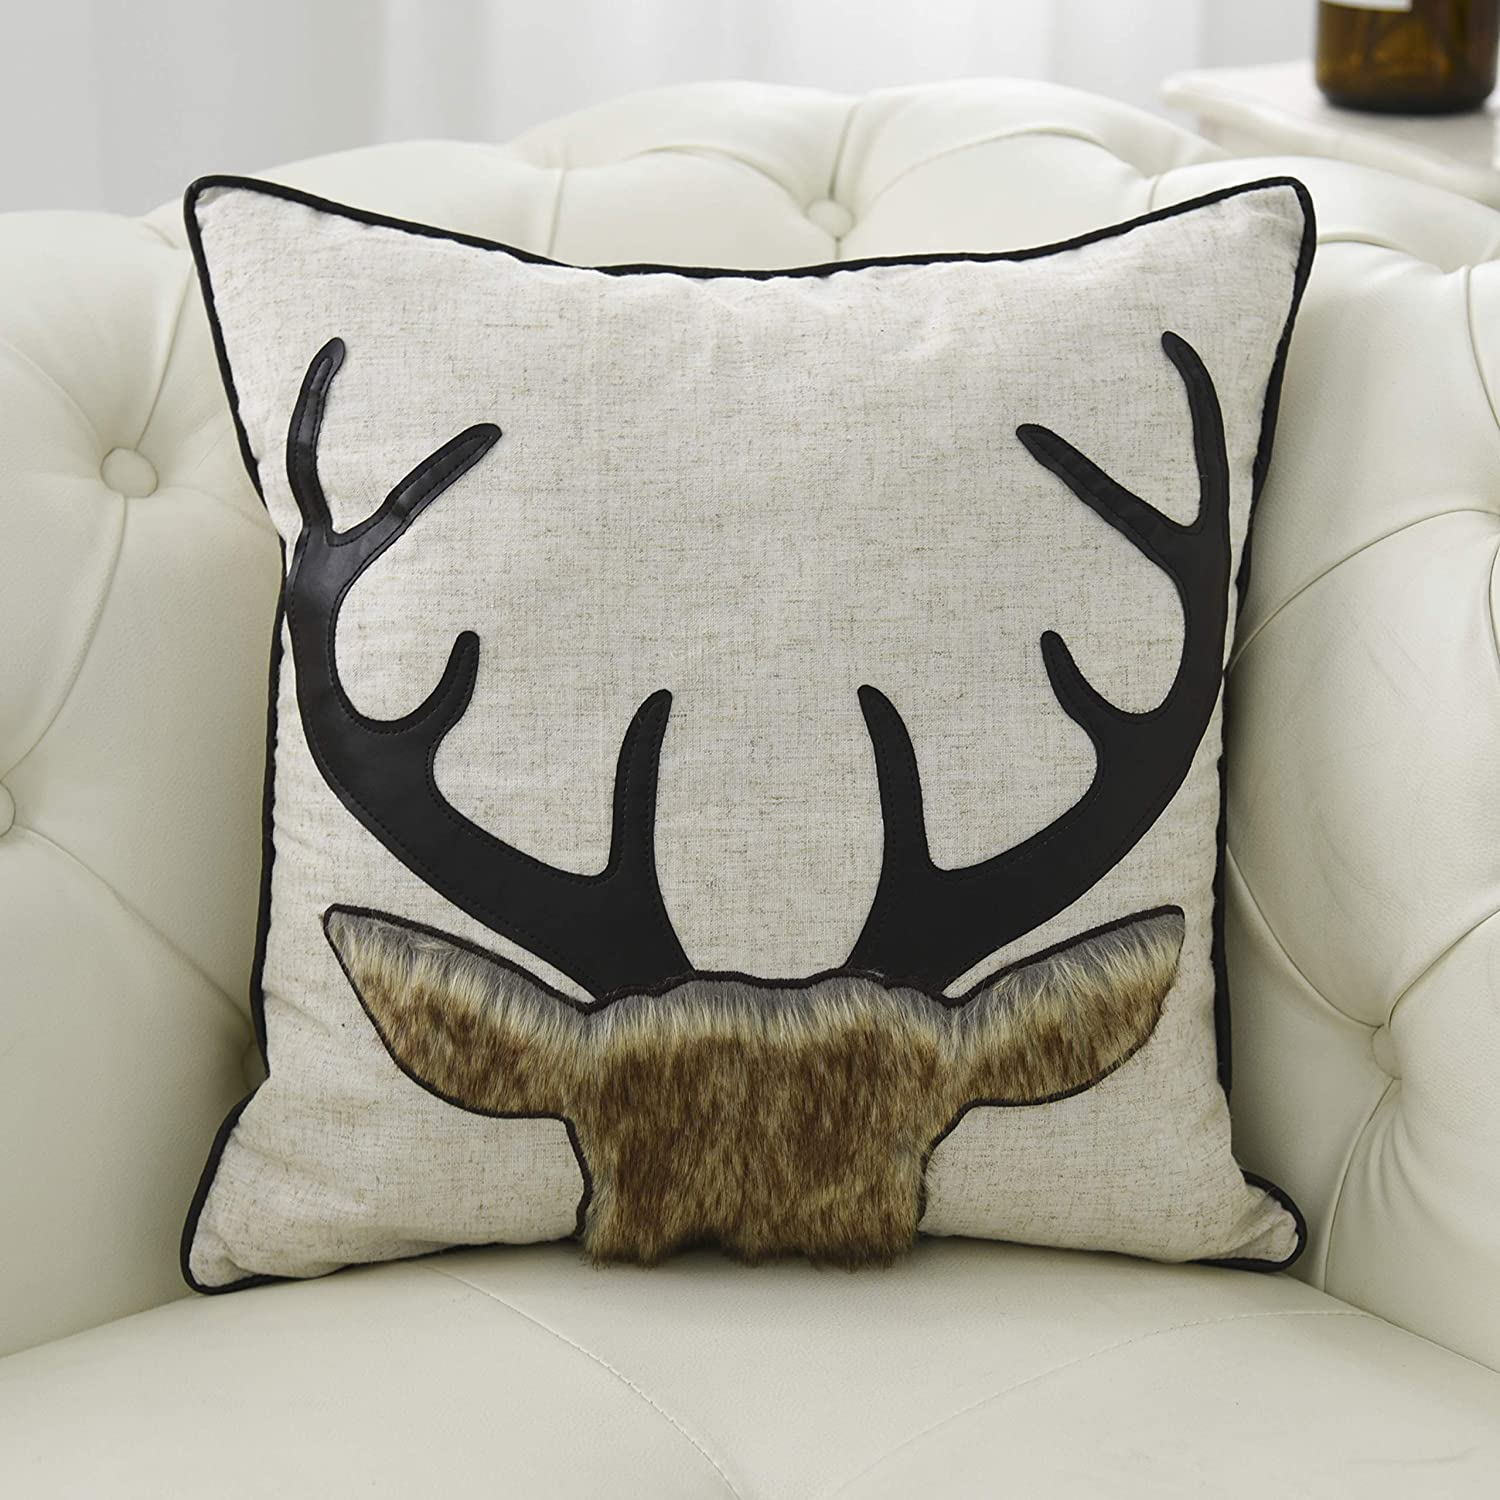 Amazing Little Funny Cotton Linen Deer Pillow Covers Decorative 3D Deer Pillowcase Square Cushion Cover With Faux Leather And Fur Applique For Sofa Bed 18X18 Caraccident5 Cool Chair Designs And Ideas Caraccident5Info